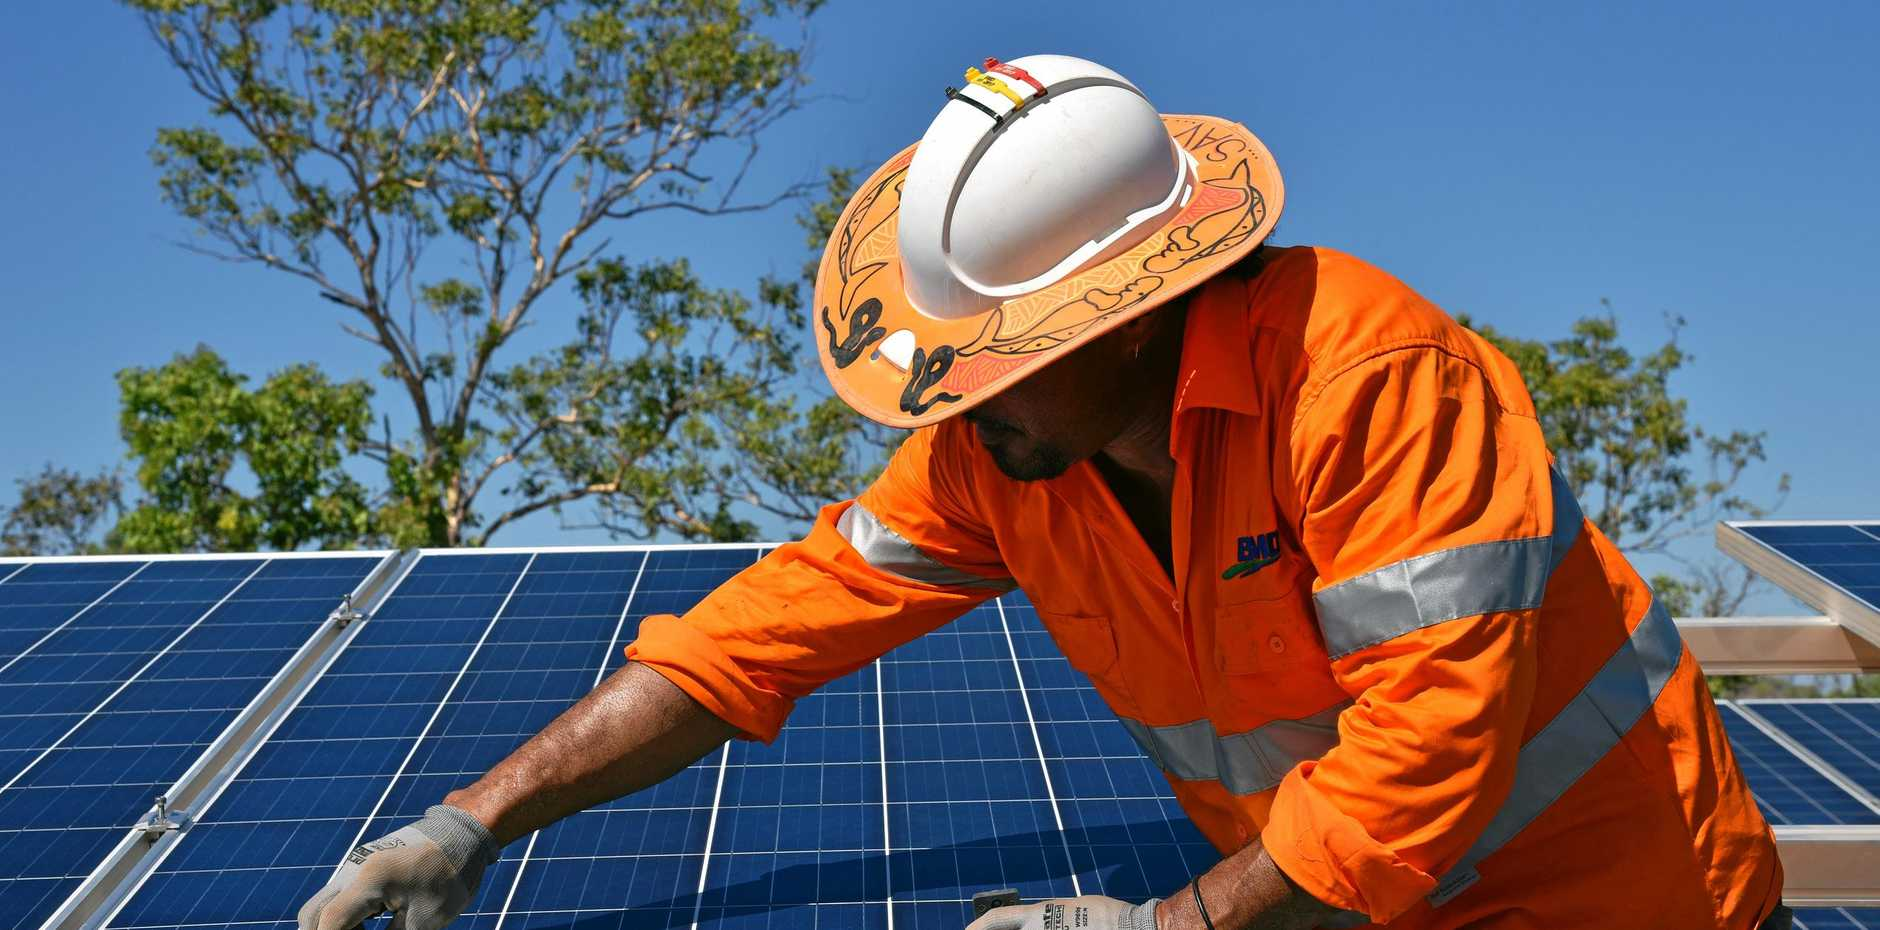 Across the Toowoomba and Western Downs local government regions, there are 14 approved solar plants, worth an estimated $5.1 billion.